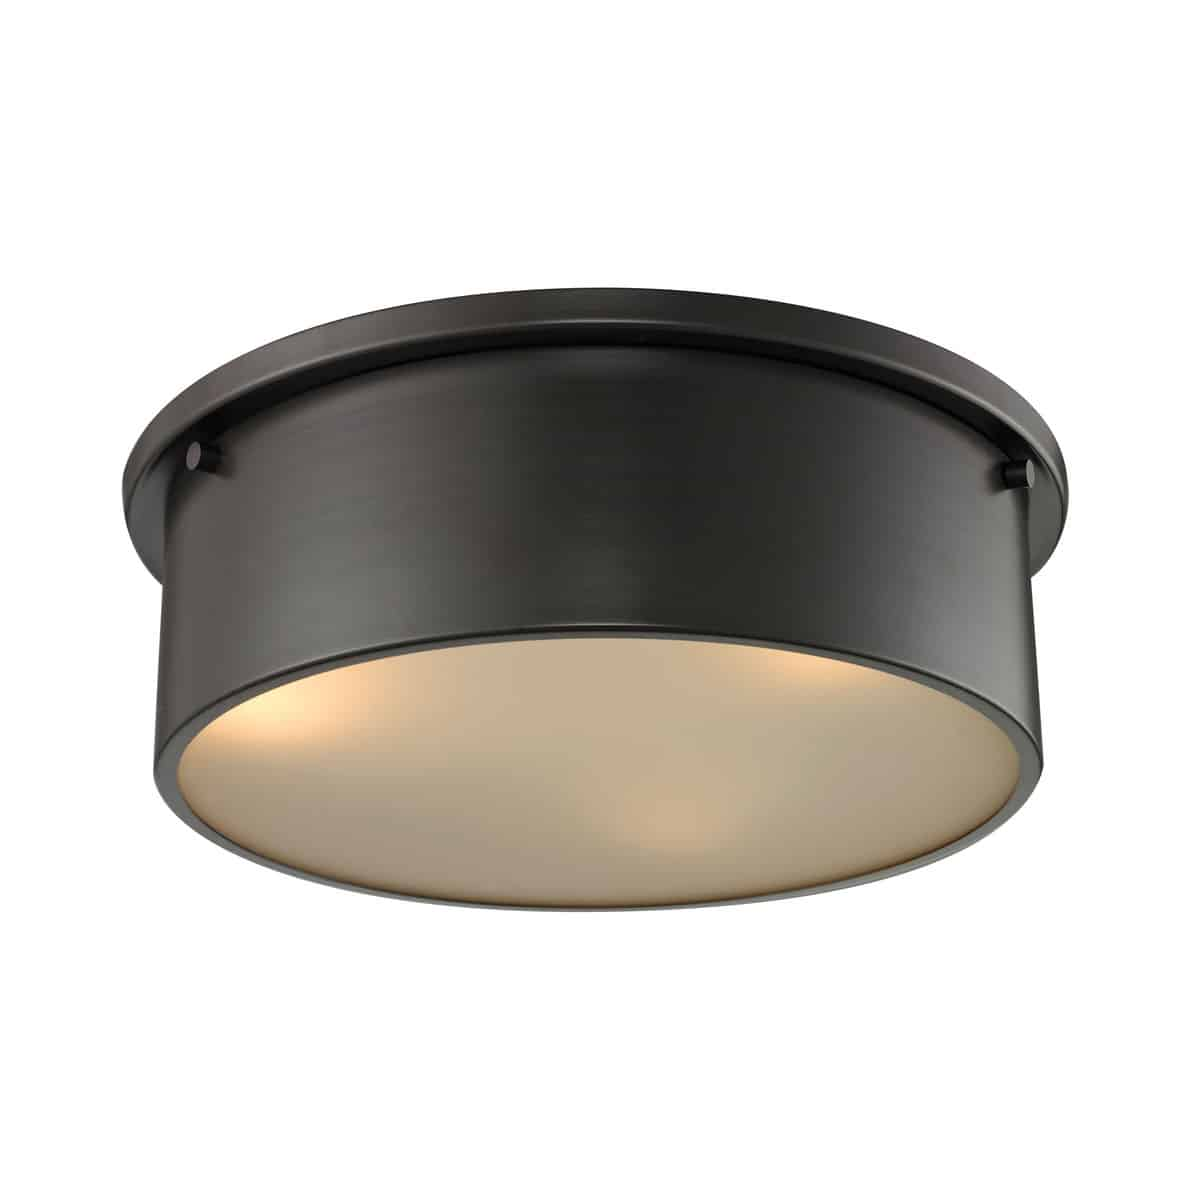 EL-11811/3_Understated design attributes coupled with function and versatility give these flushes range to fit within a variety of style themes. Frosted white diffuser beautifully contrasts with the metalwork finished in Brushed Nickel or Oil Rubbed Bronze.